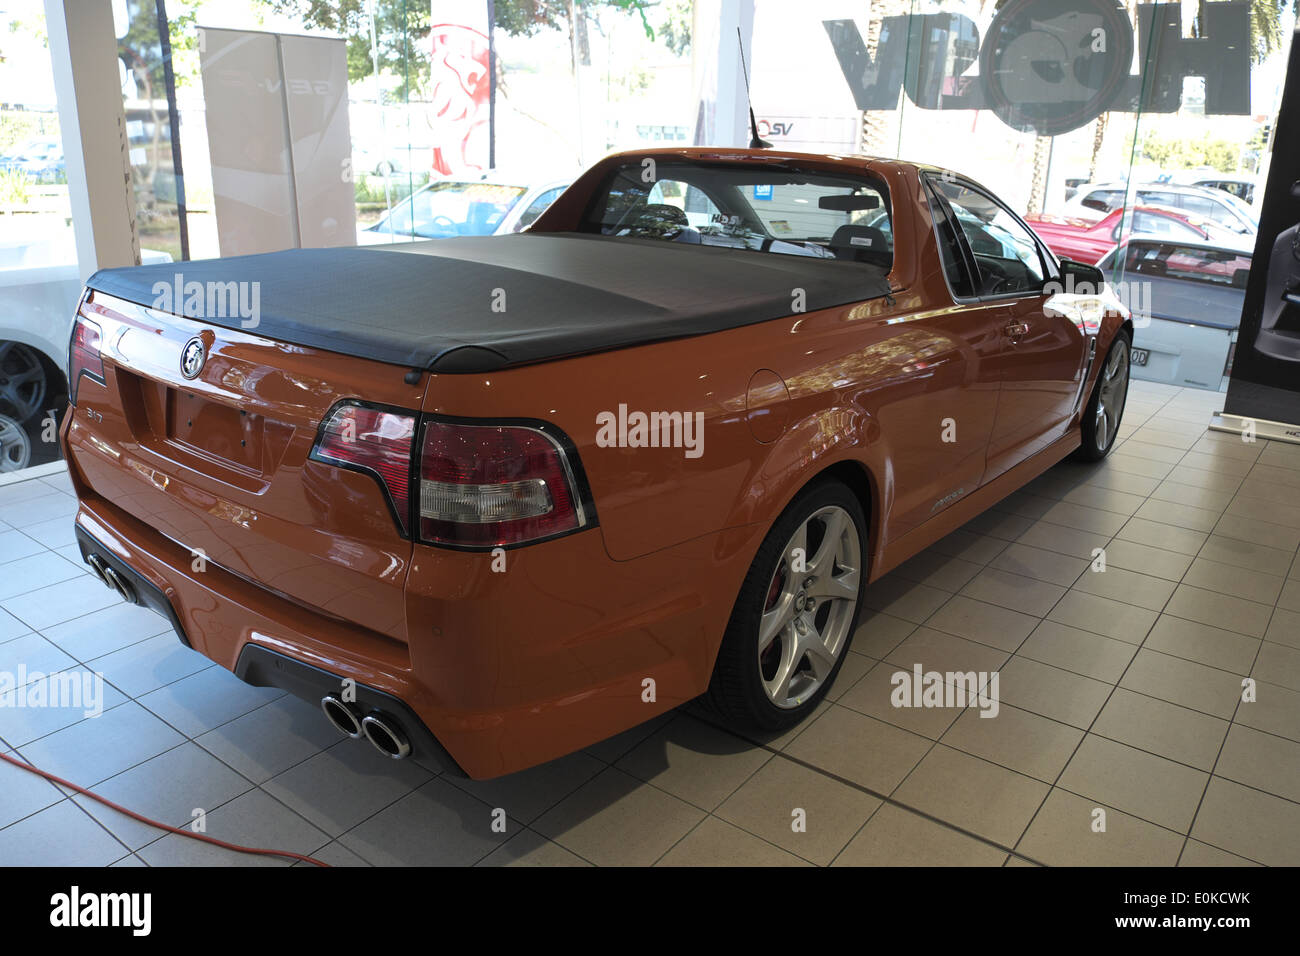 hight resolution of holden hsv ute for sale in a holden dealership in sydney stock image